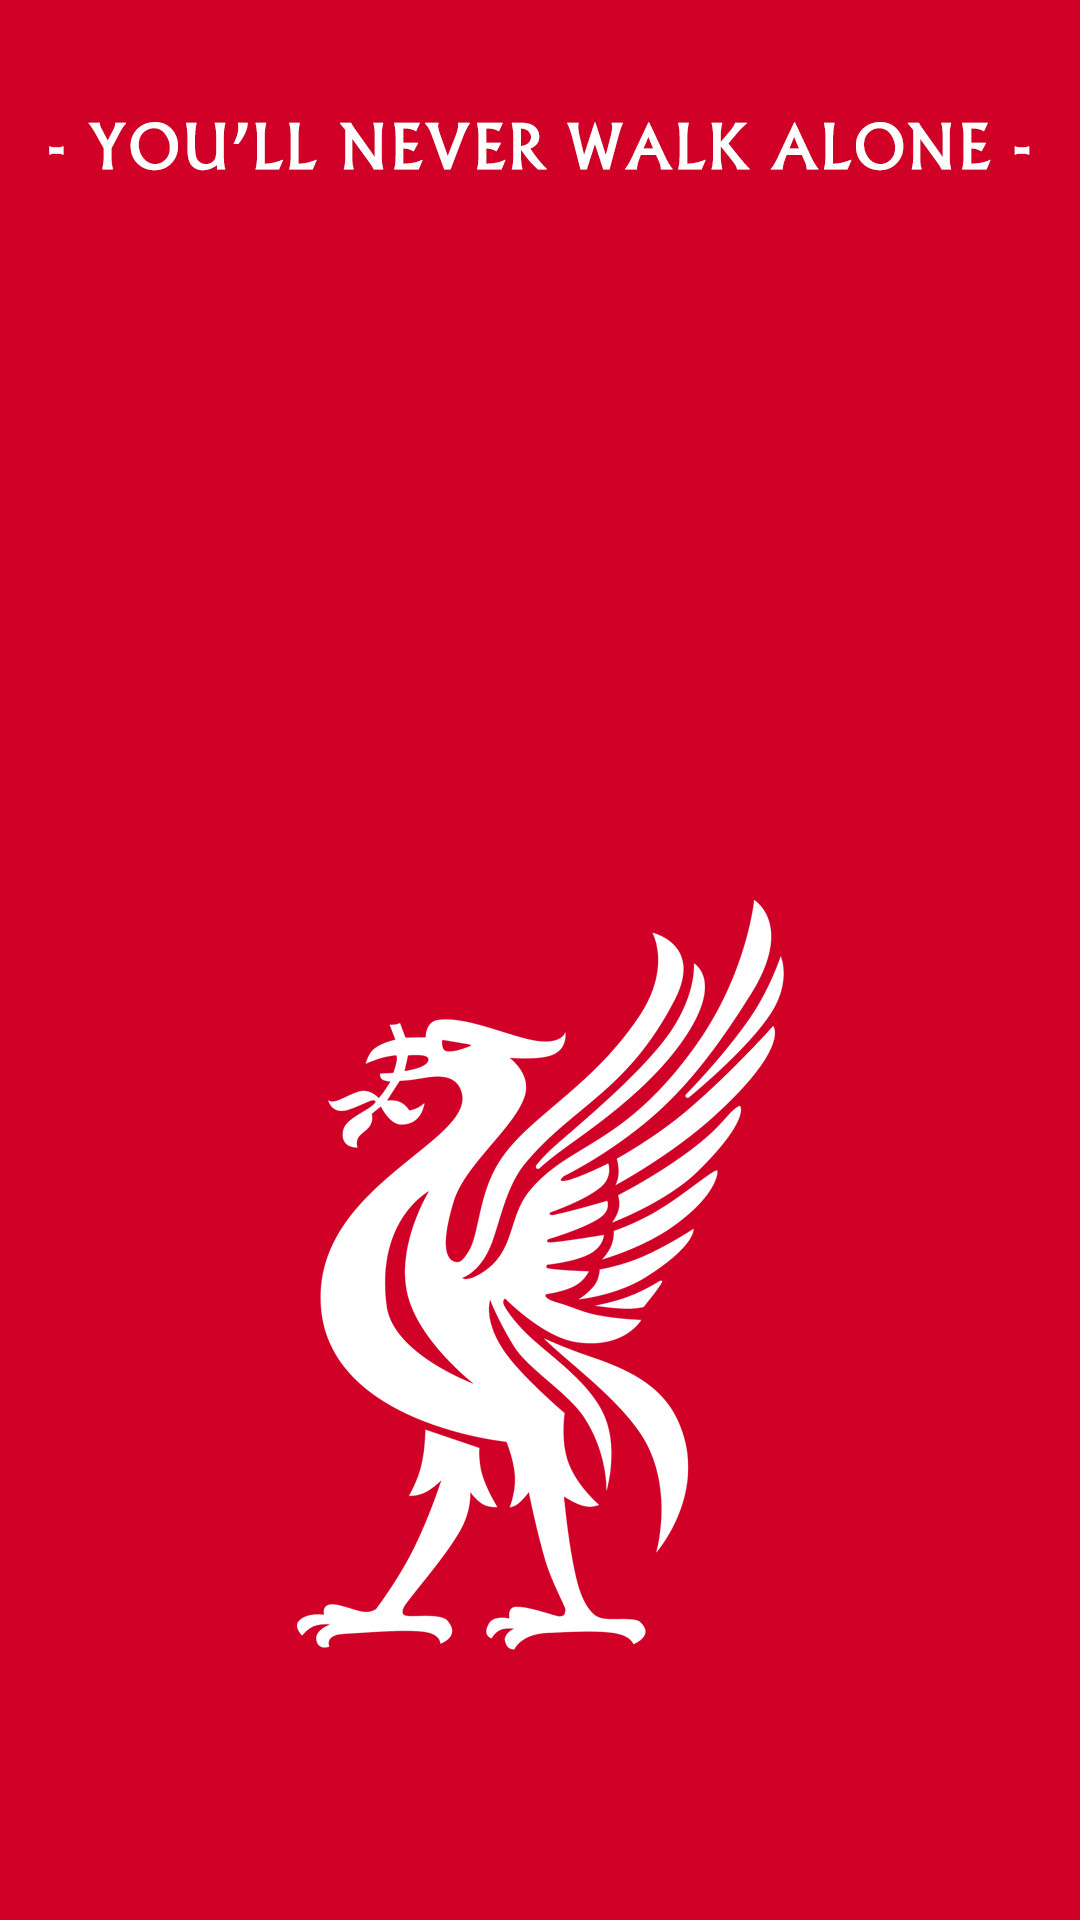 Liverpool Wallpaper Iphone 1080x1920 Download Hd Wallpaper Wallpapertip